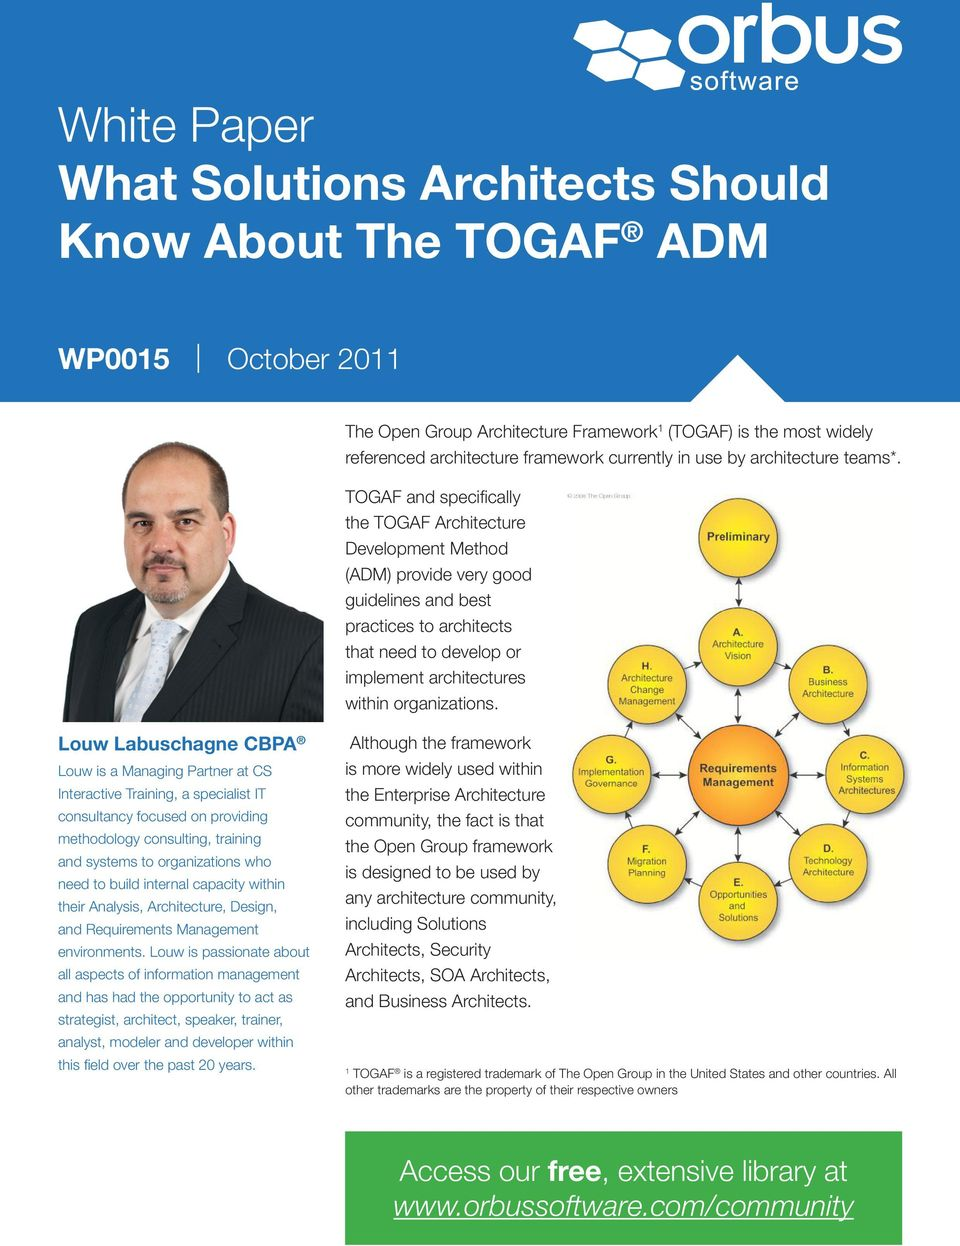 TOGAF and specifically the TOGAF Architecture Development Method (ADM) provide very good guidelines and best practices to architects that need to develop or implement architectures within